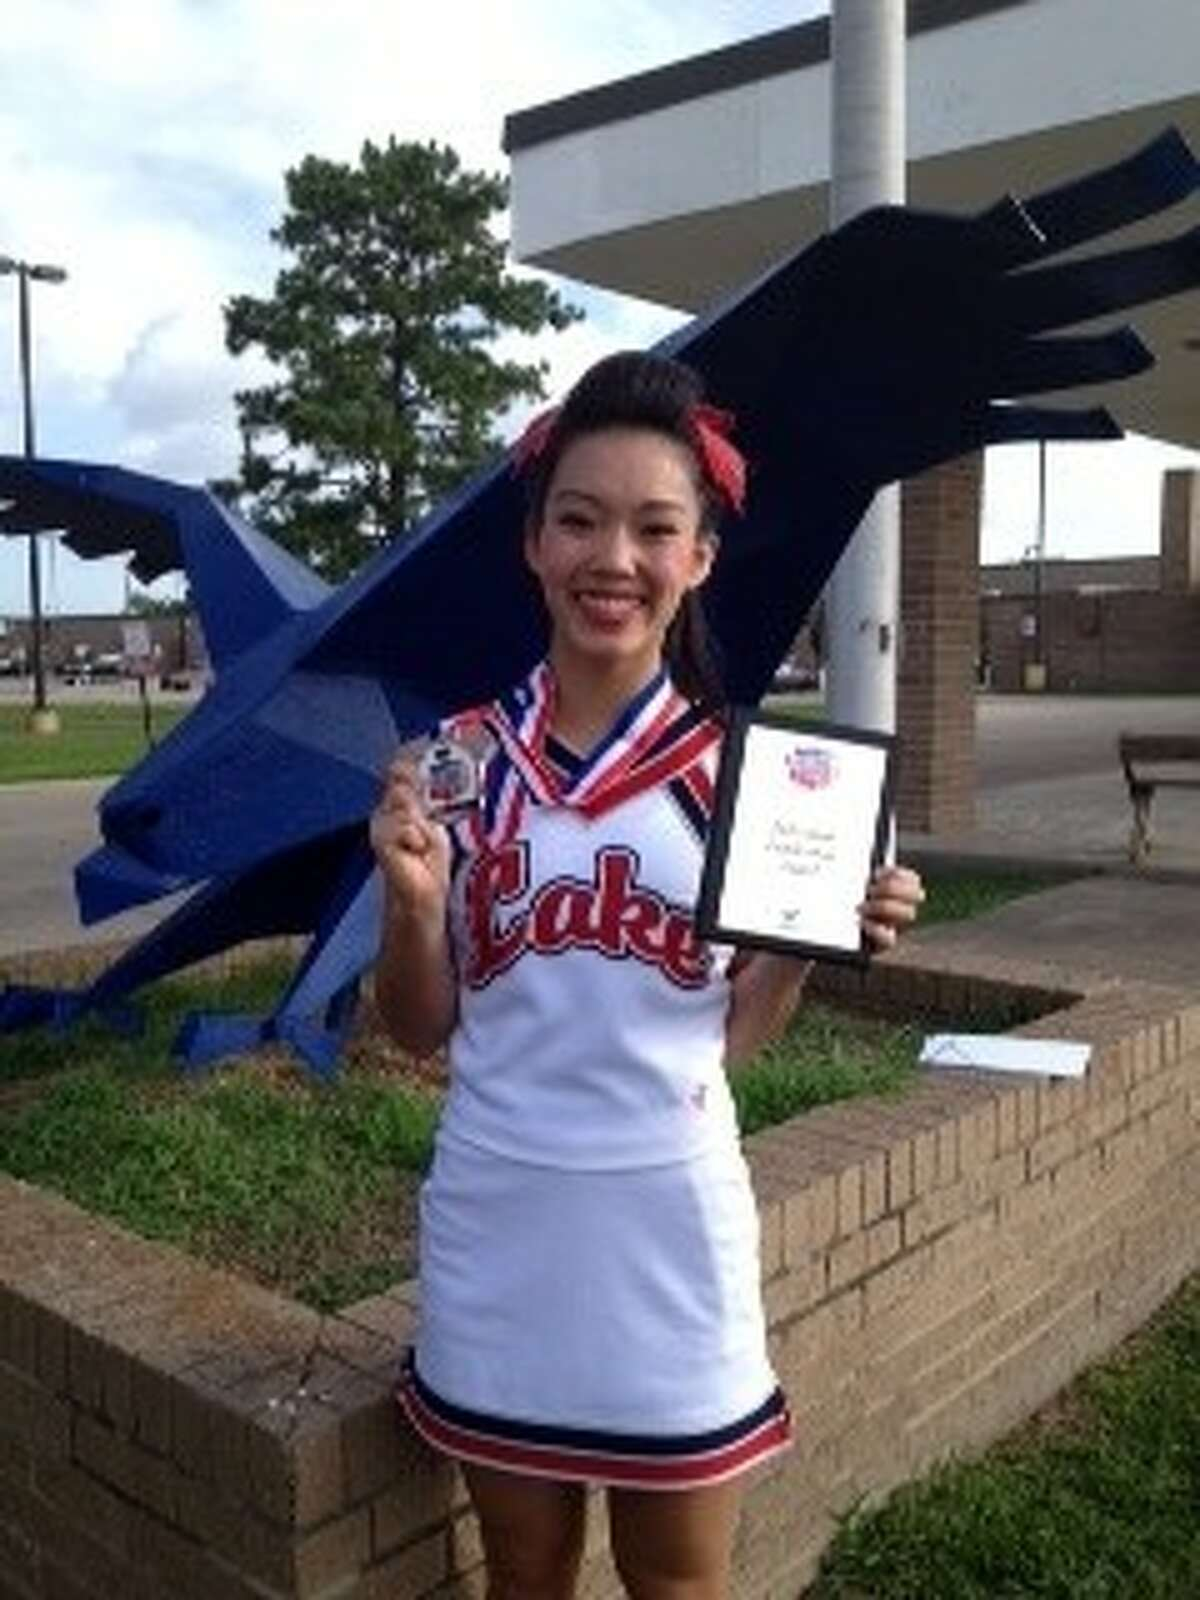 Clear Lake High School's Juliana Boyle was named top all-American cheerleader over all other cheerleaders recently at the NCA camp in Dallas.